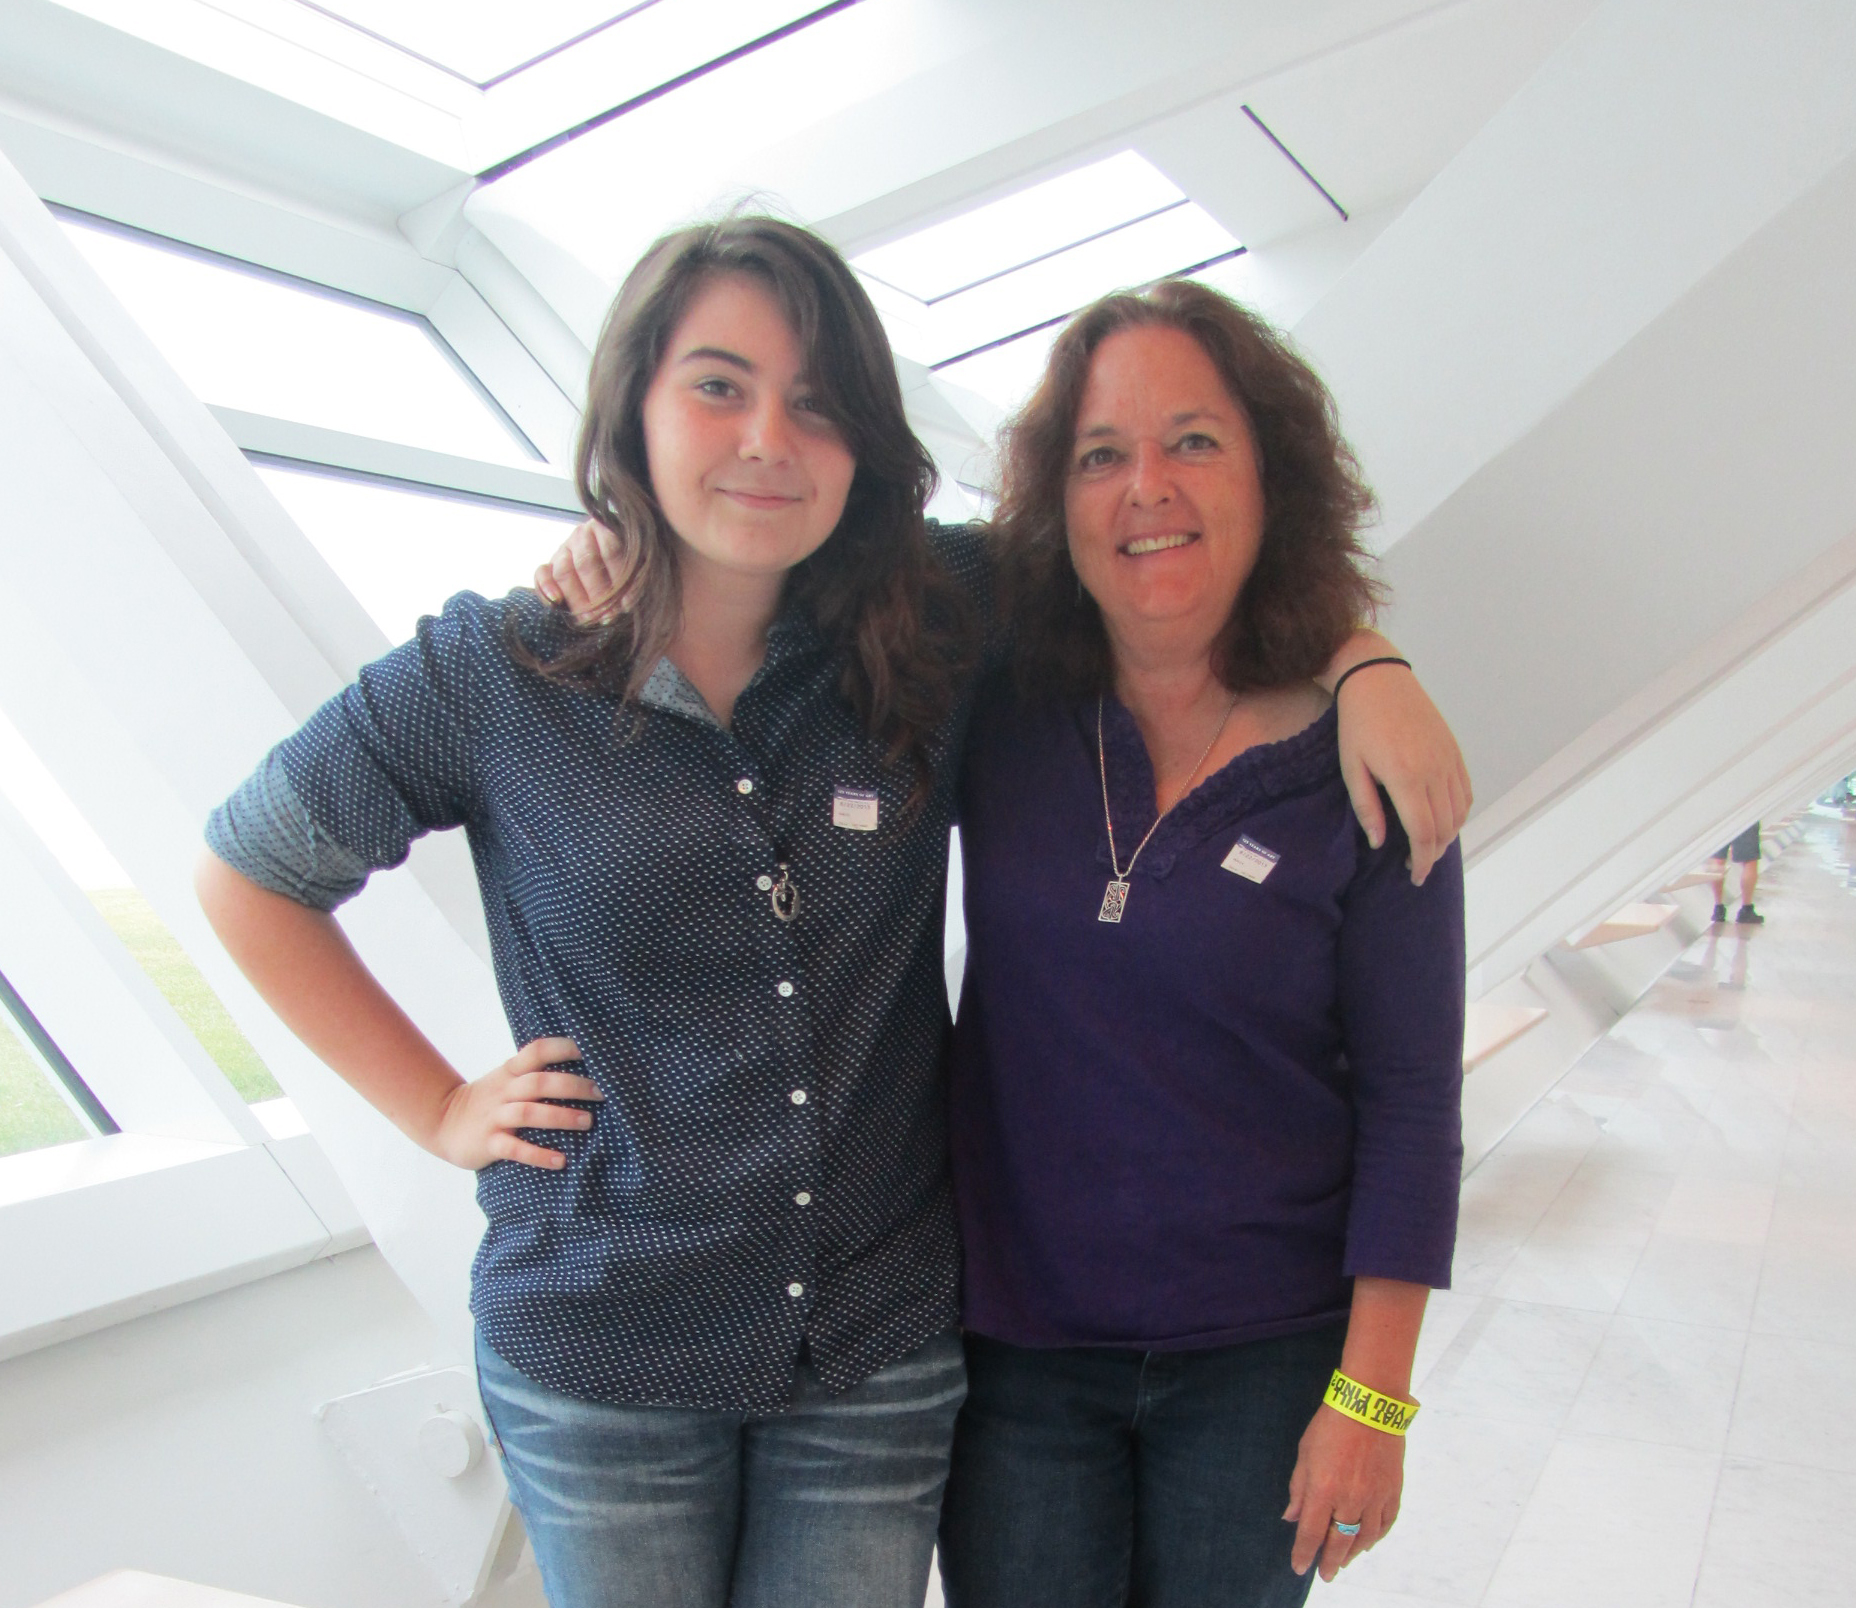 Elysia Powers and Tori Trauscht visit the Museum on August 22, 2013. Photo by the author.